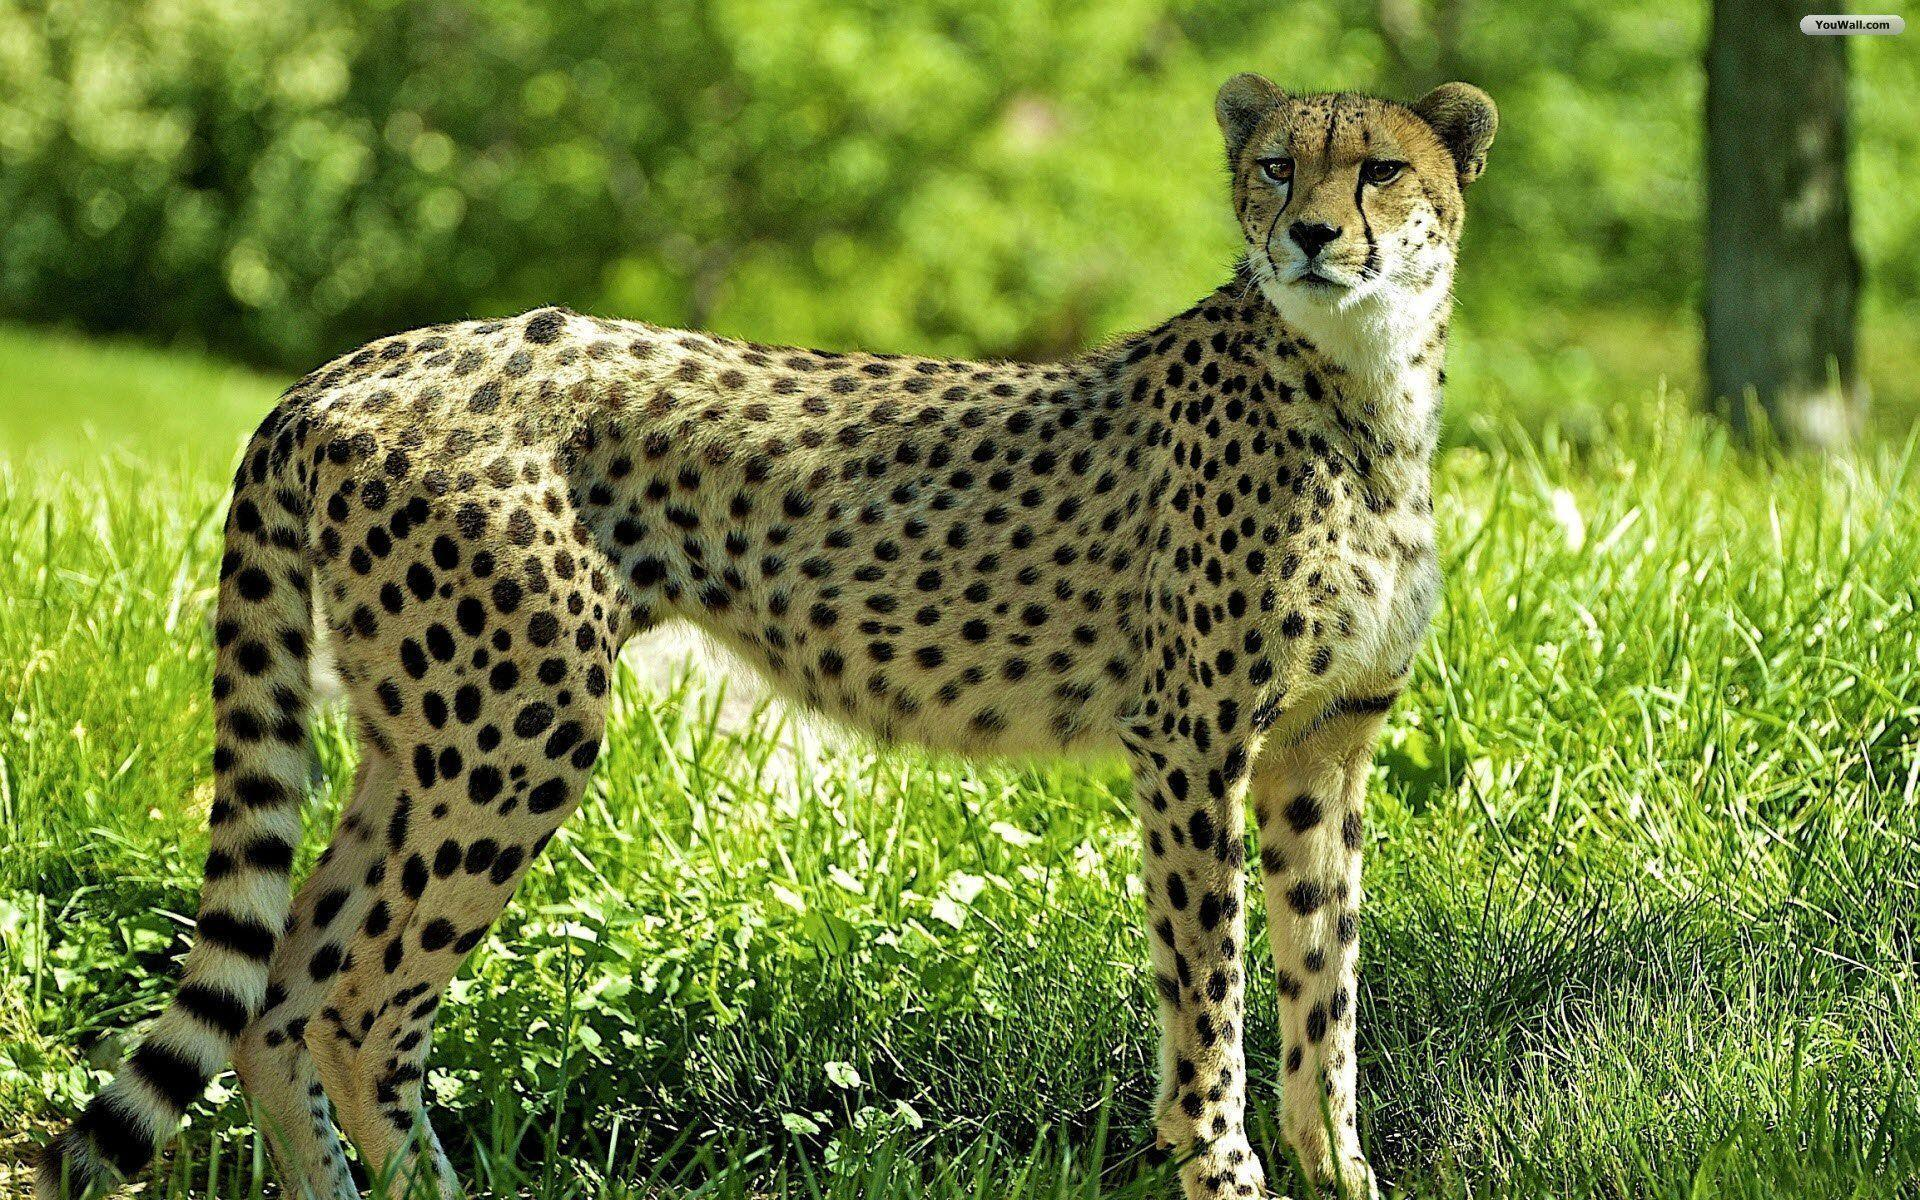 Cheetah Wallpapers - Full HD wallpaper search - page 8